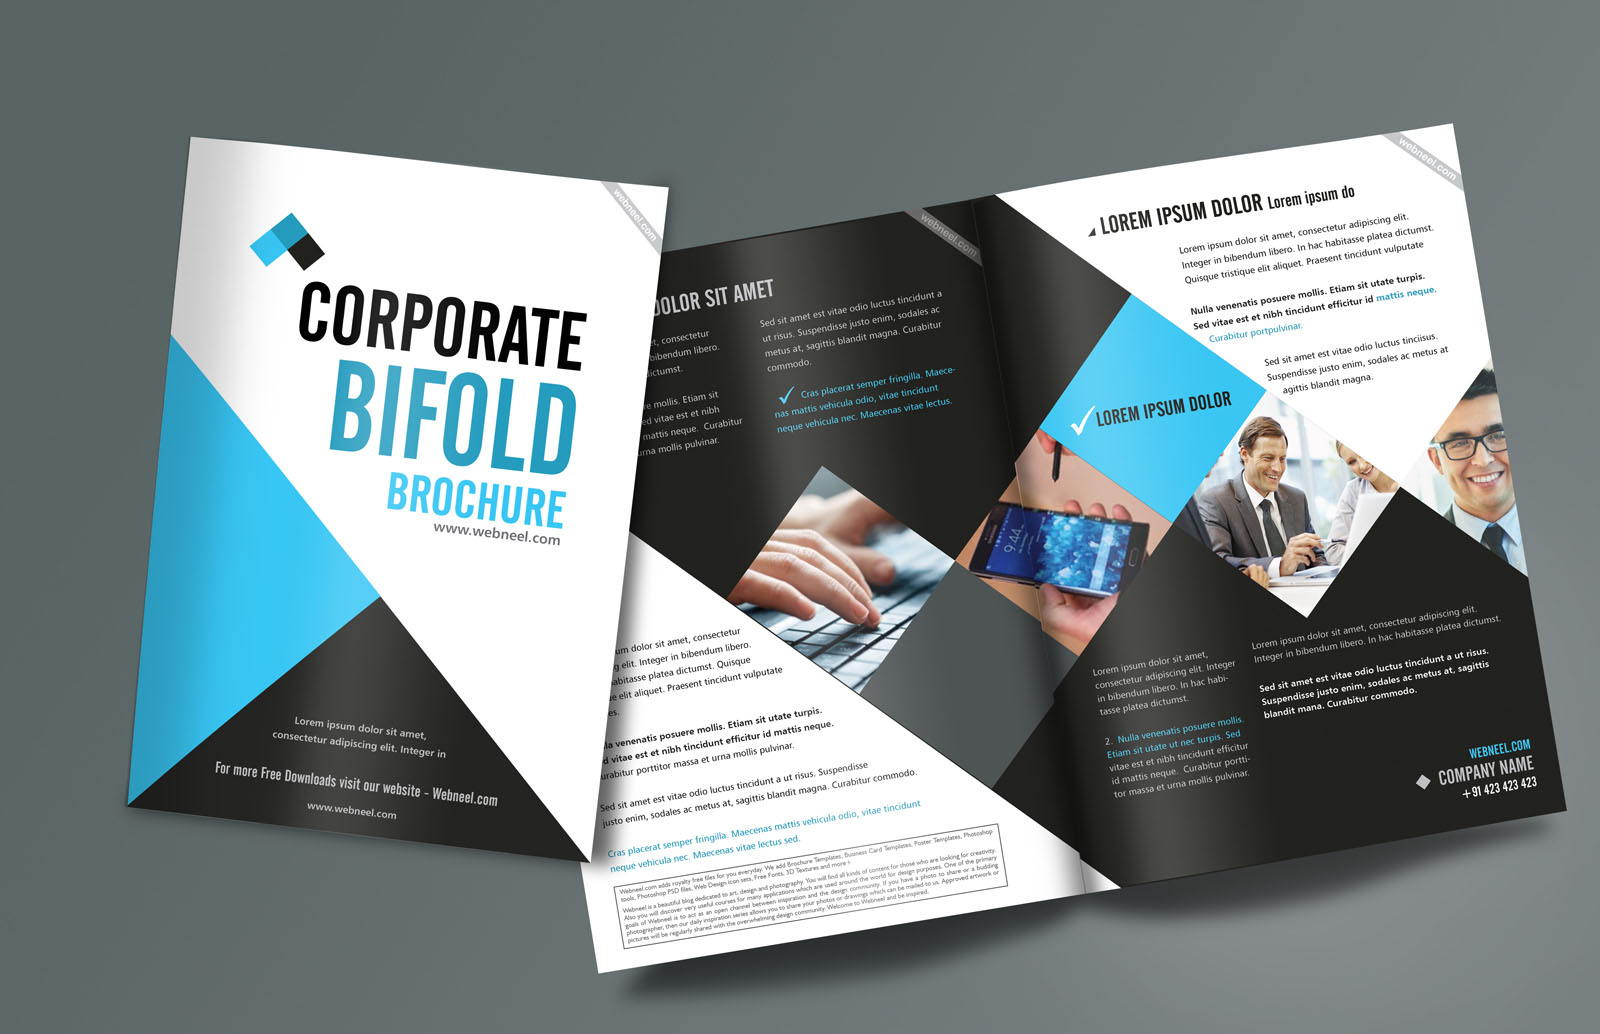 brochures design templates - corporate bifold brochure design templates freedownload